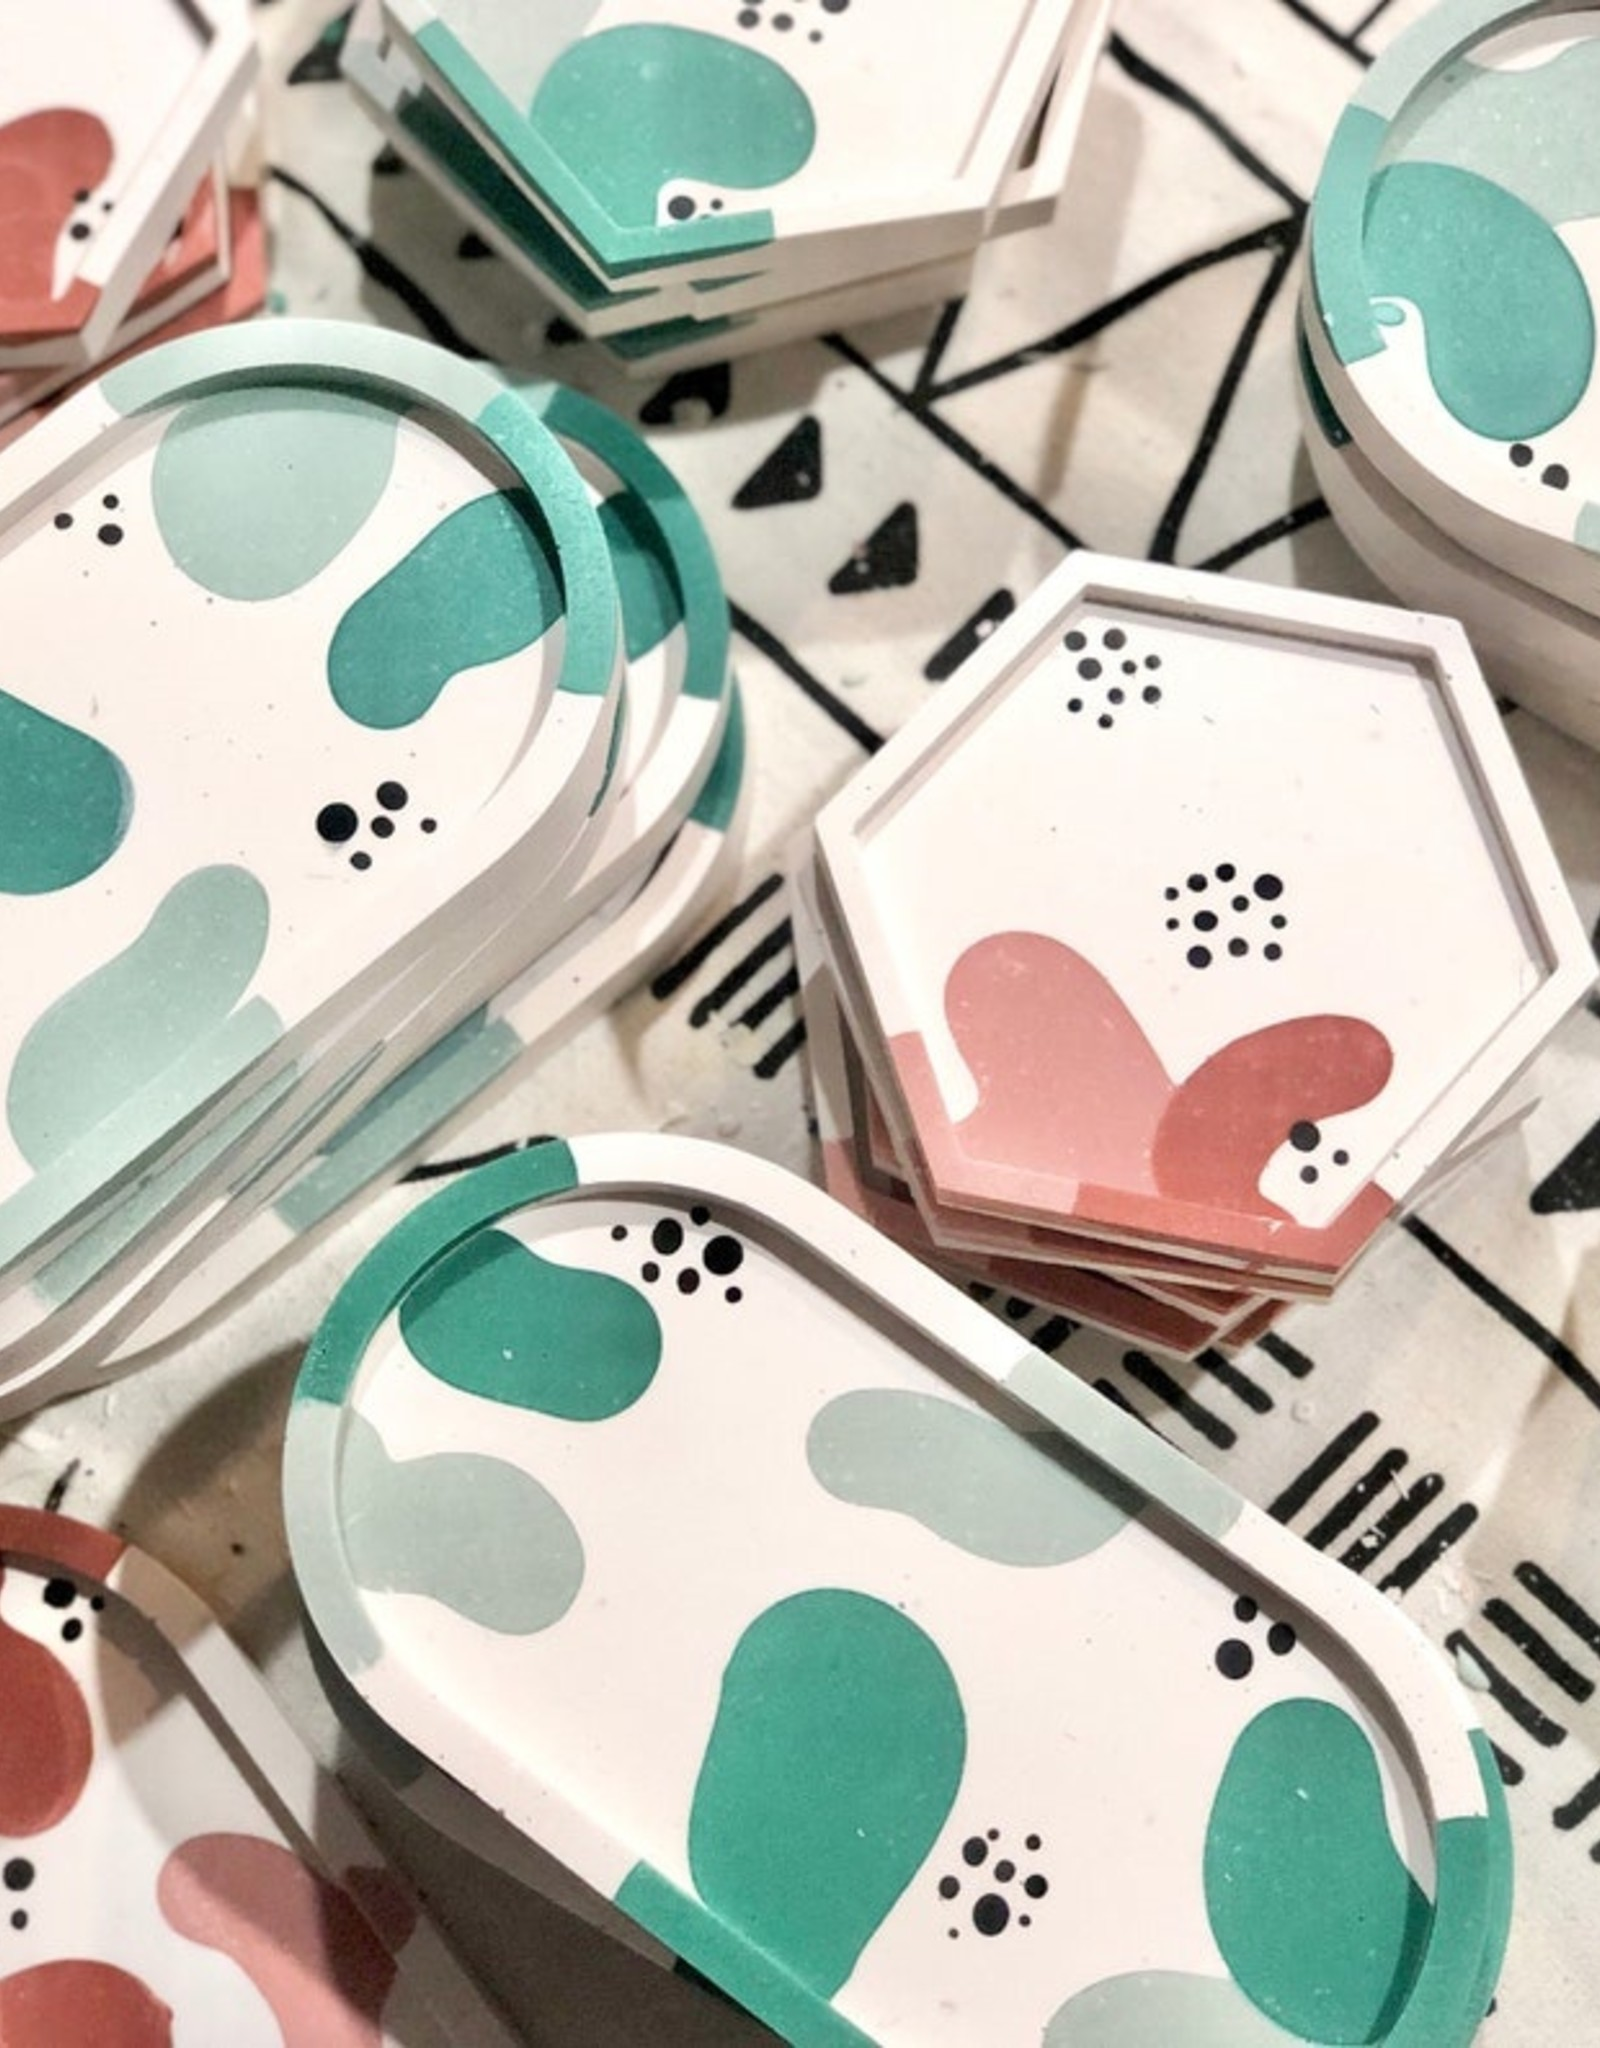 Amy Price Trinket Tray - Squiggle Teal